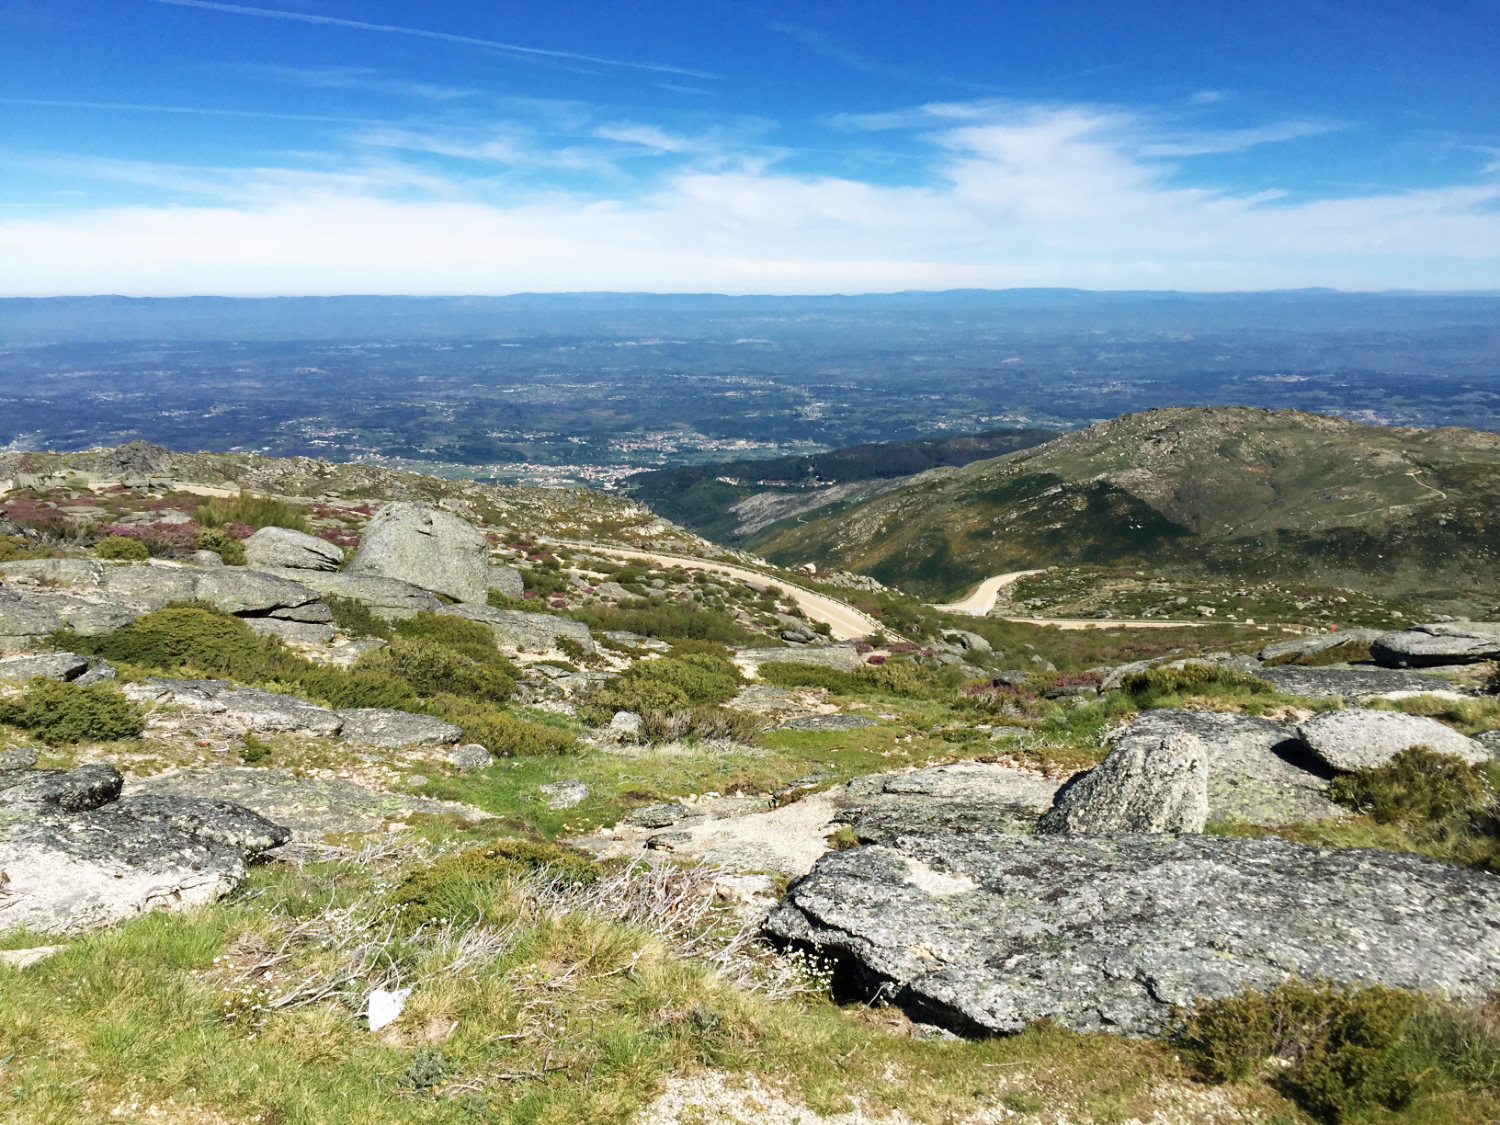 The immense view from the top of the Serr a da Estrela